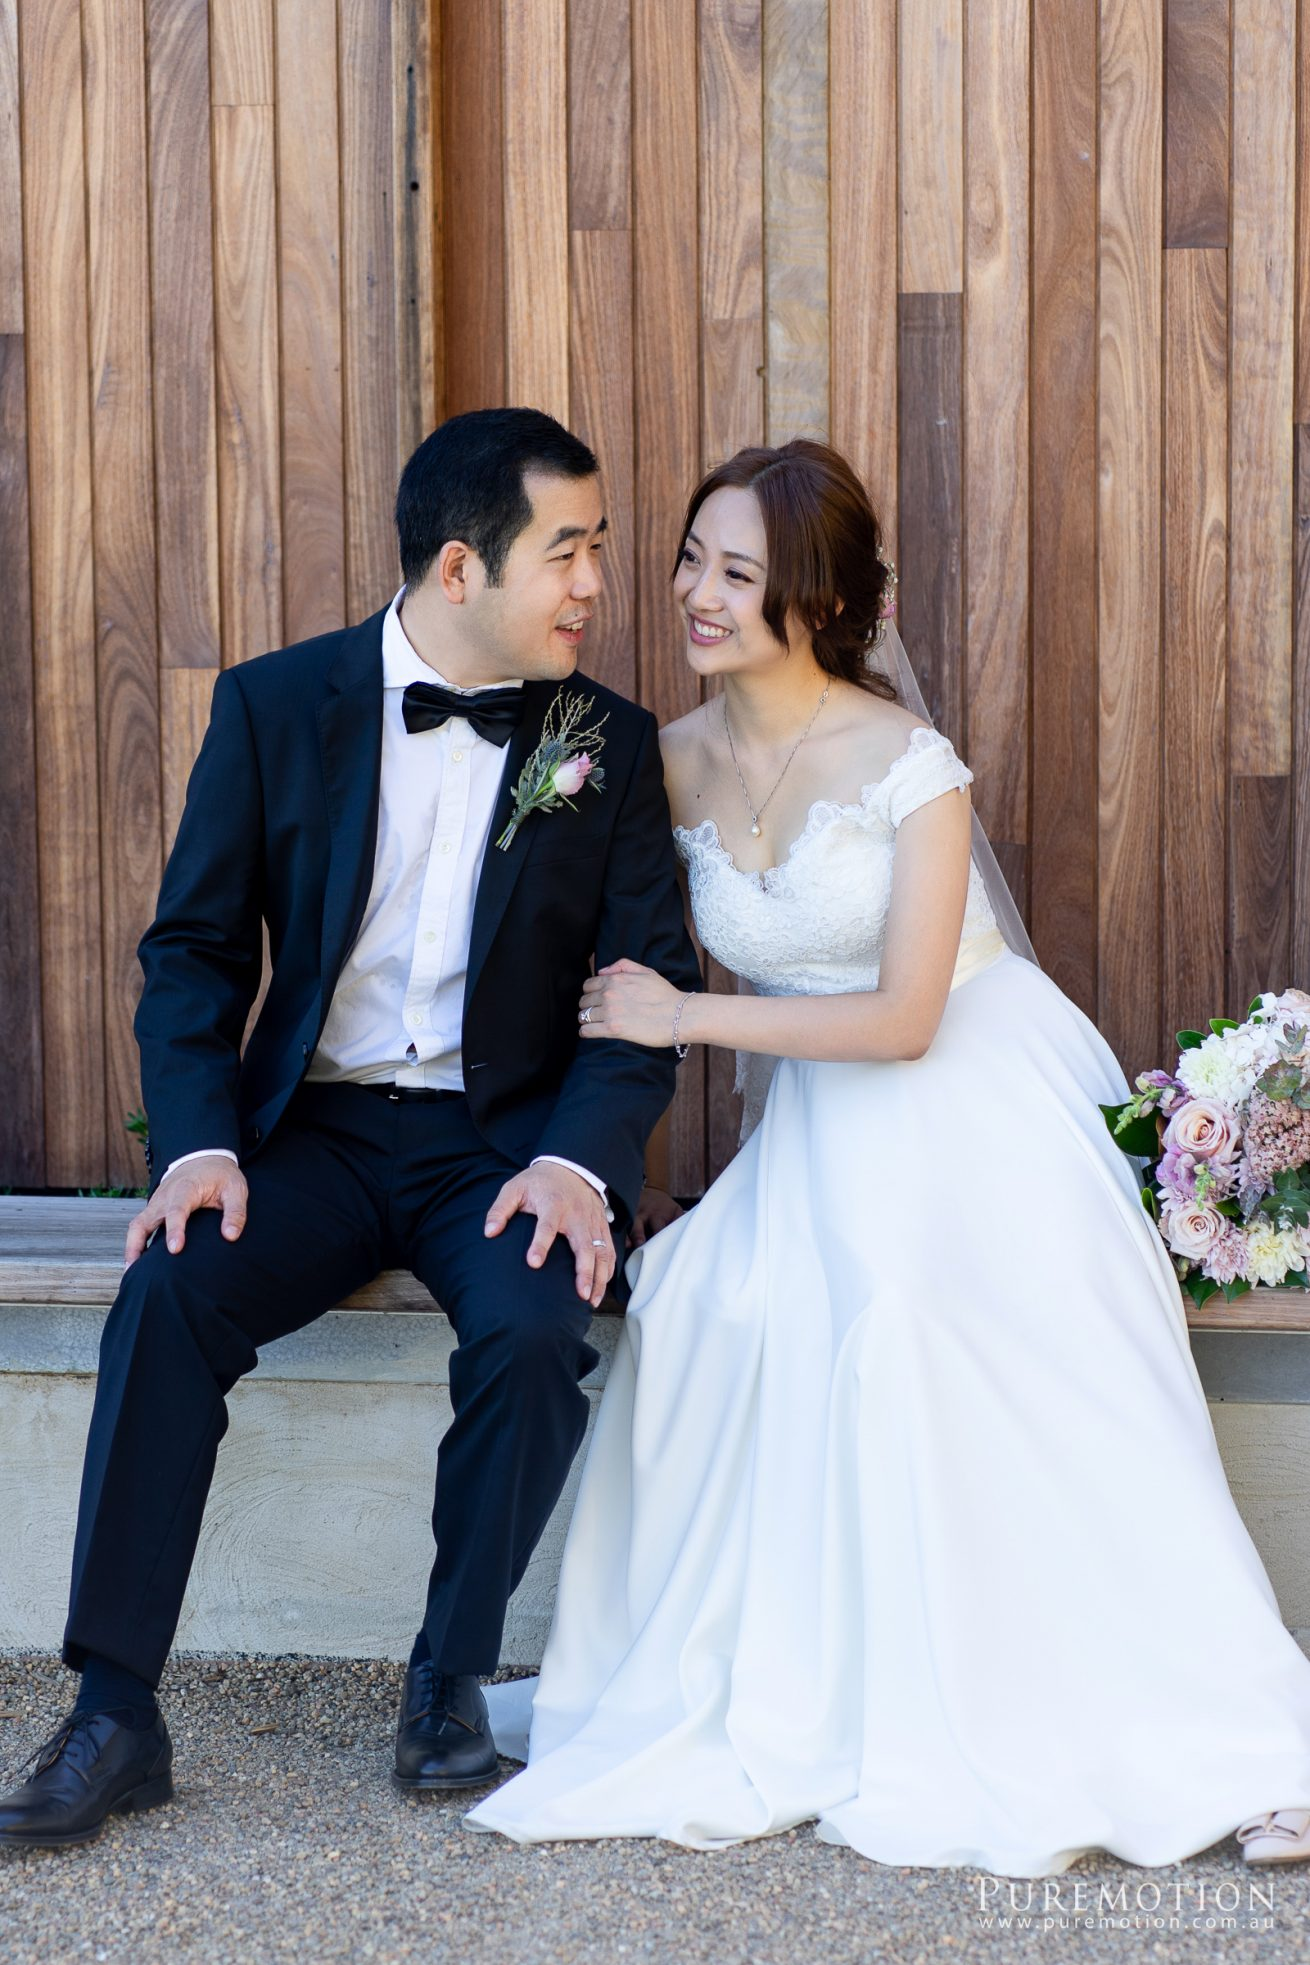 190309 Puremotion Wedding Photography Brisbane Alex Huang AngelaSunny_Edited-0094